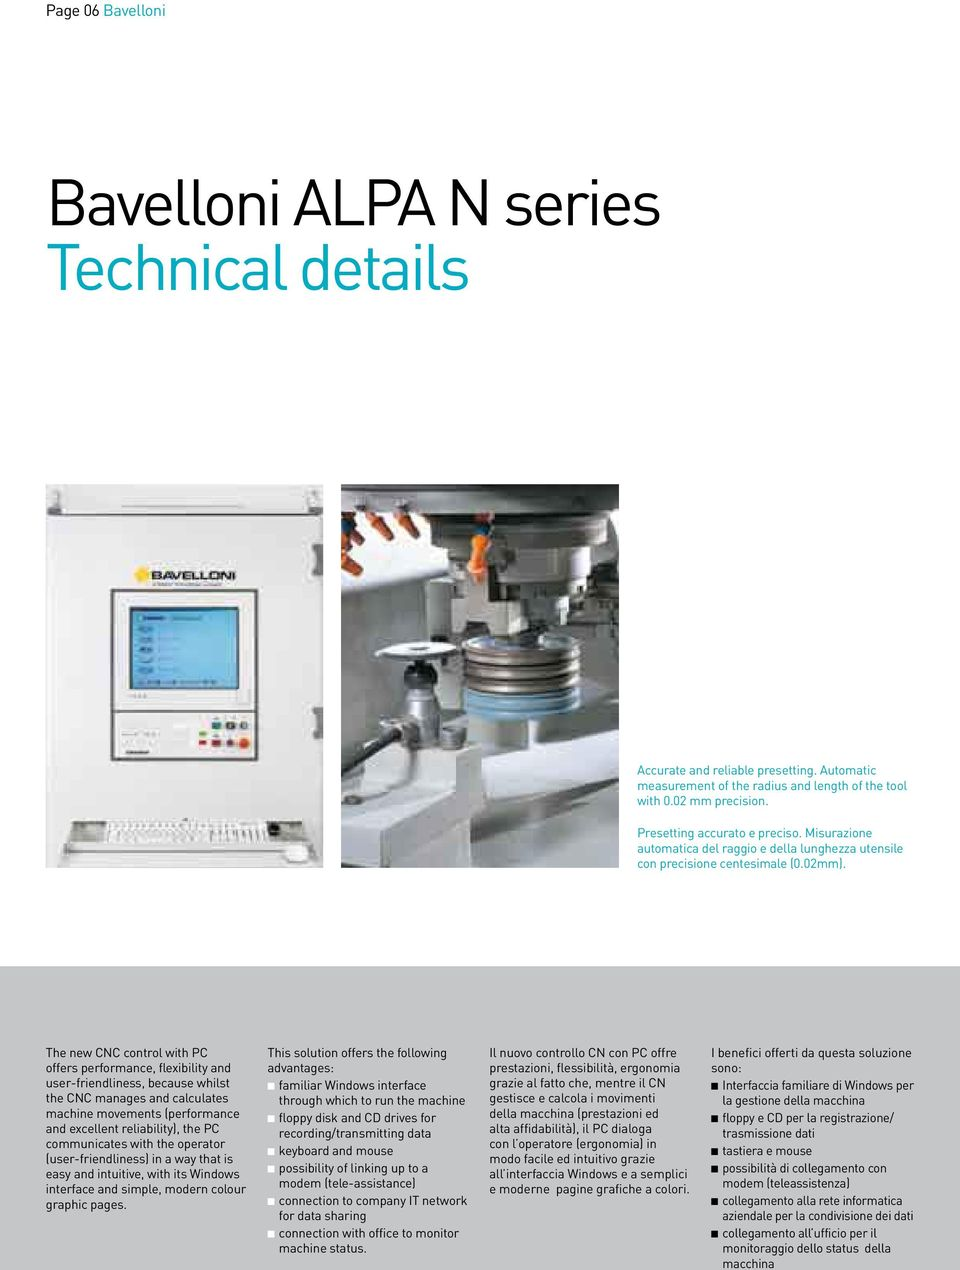 The new CNC control with PC offers performance, flexibility and user-friendliness, because whilst the CNC manages and calculates machine movements (performance and excellent reliability), the PC